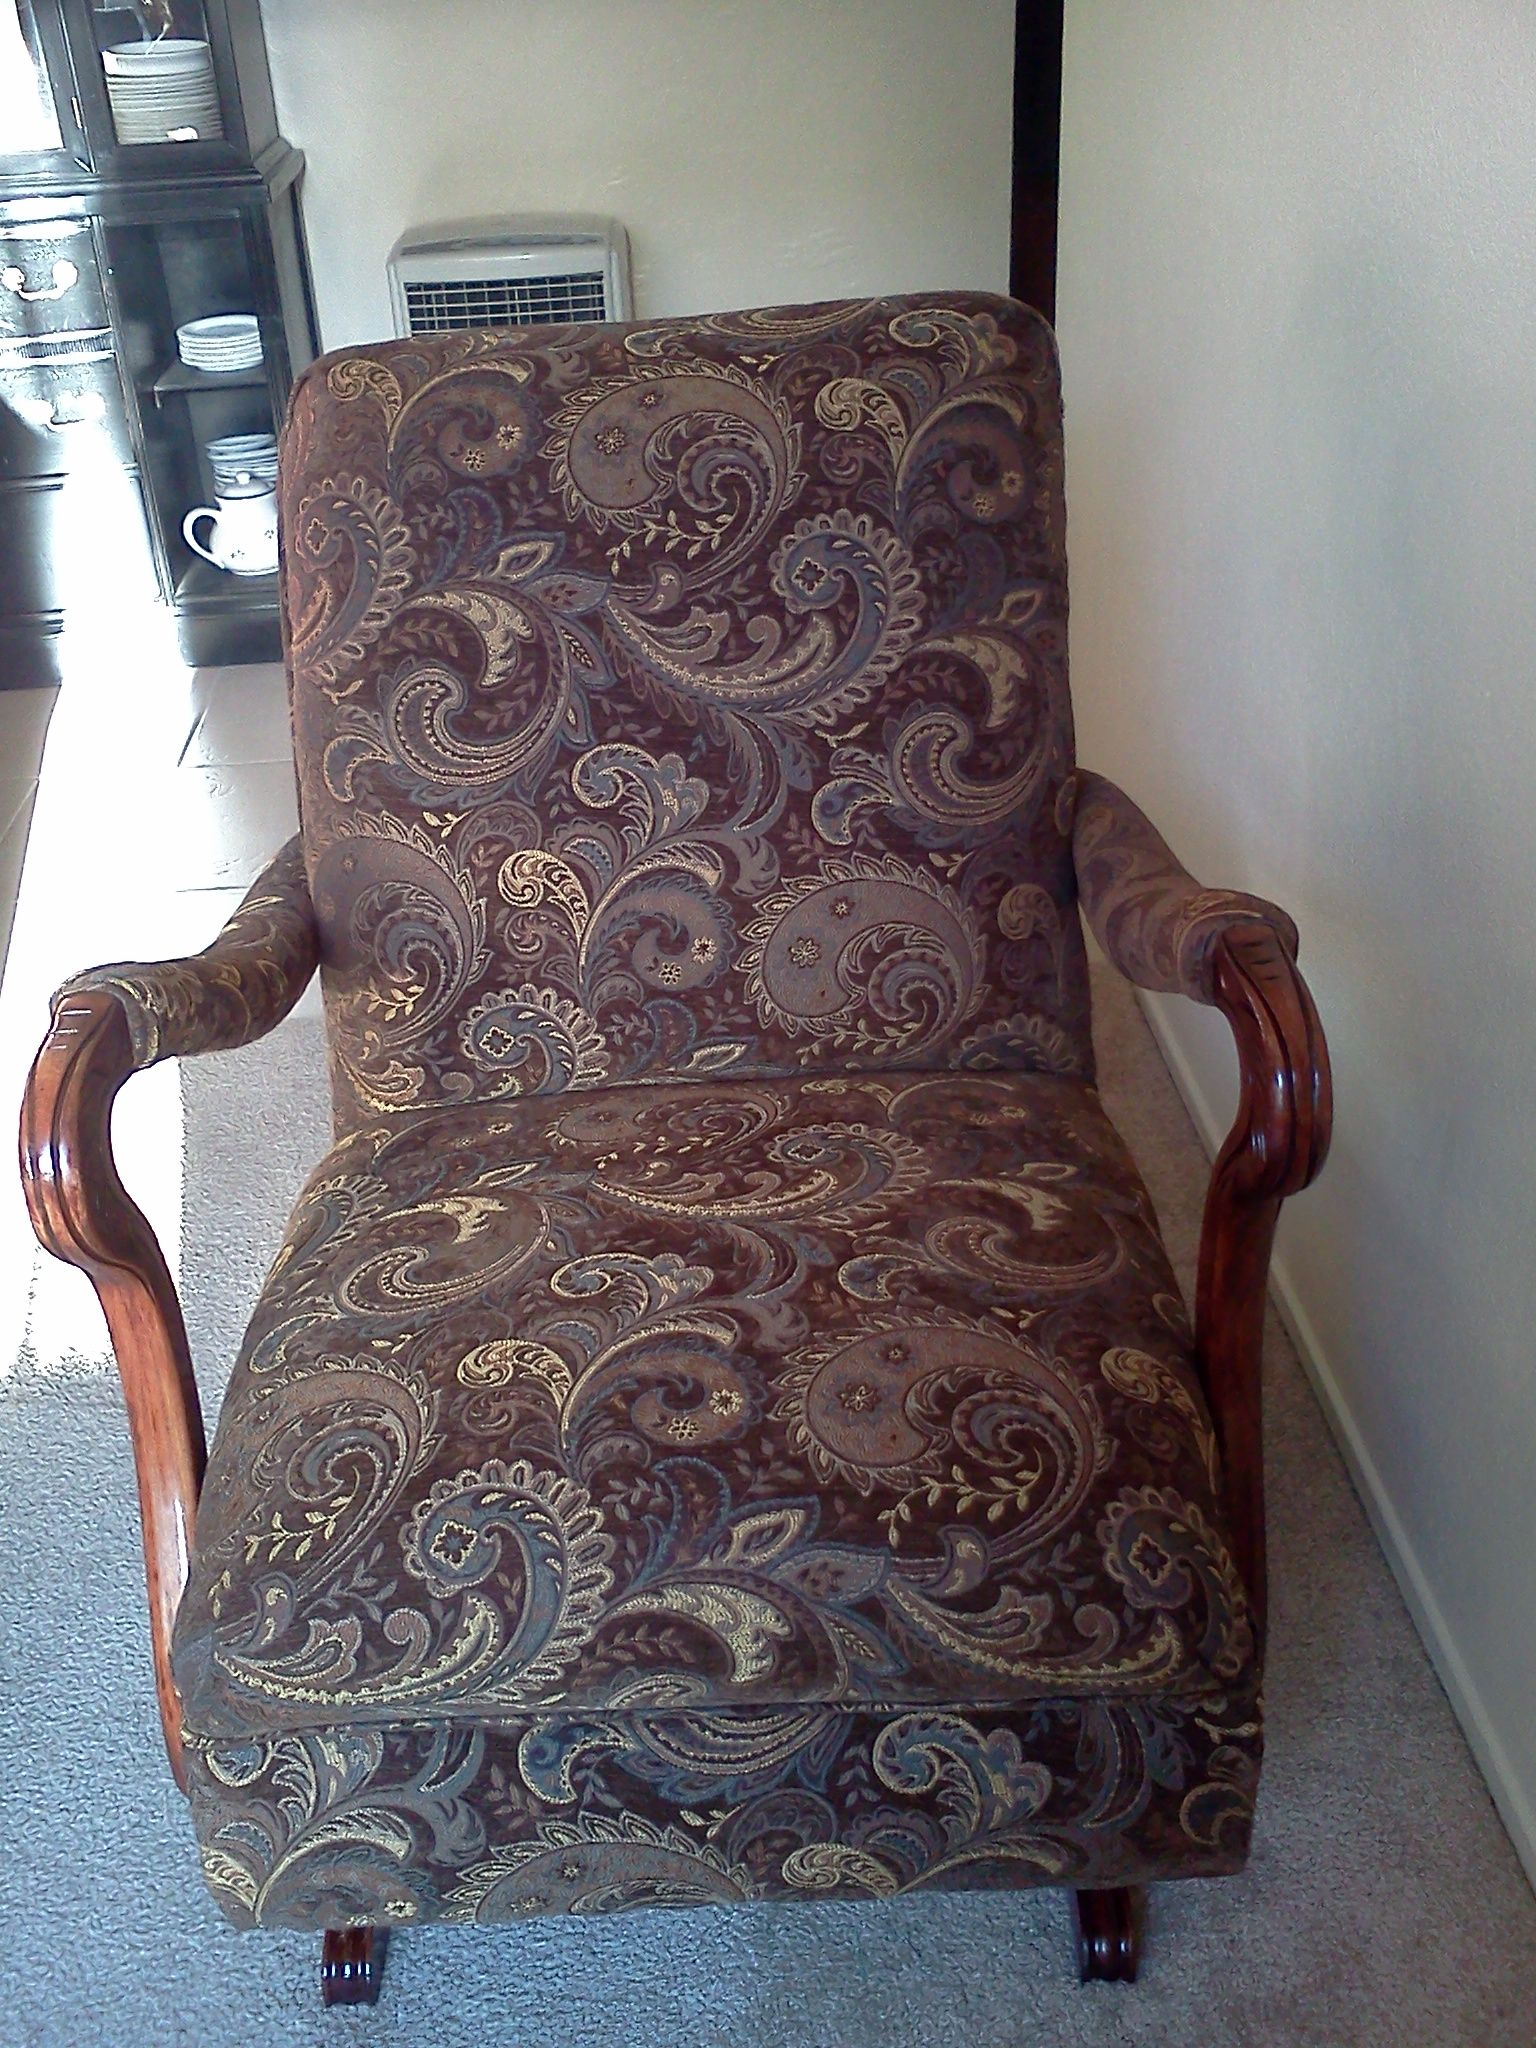 refinished and reupholstered antique platform rocker · Vintage Rocking ChairVintage  ... - Refinished And Reupholstered Antique Platform Rocker Furniture